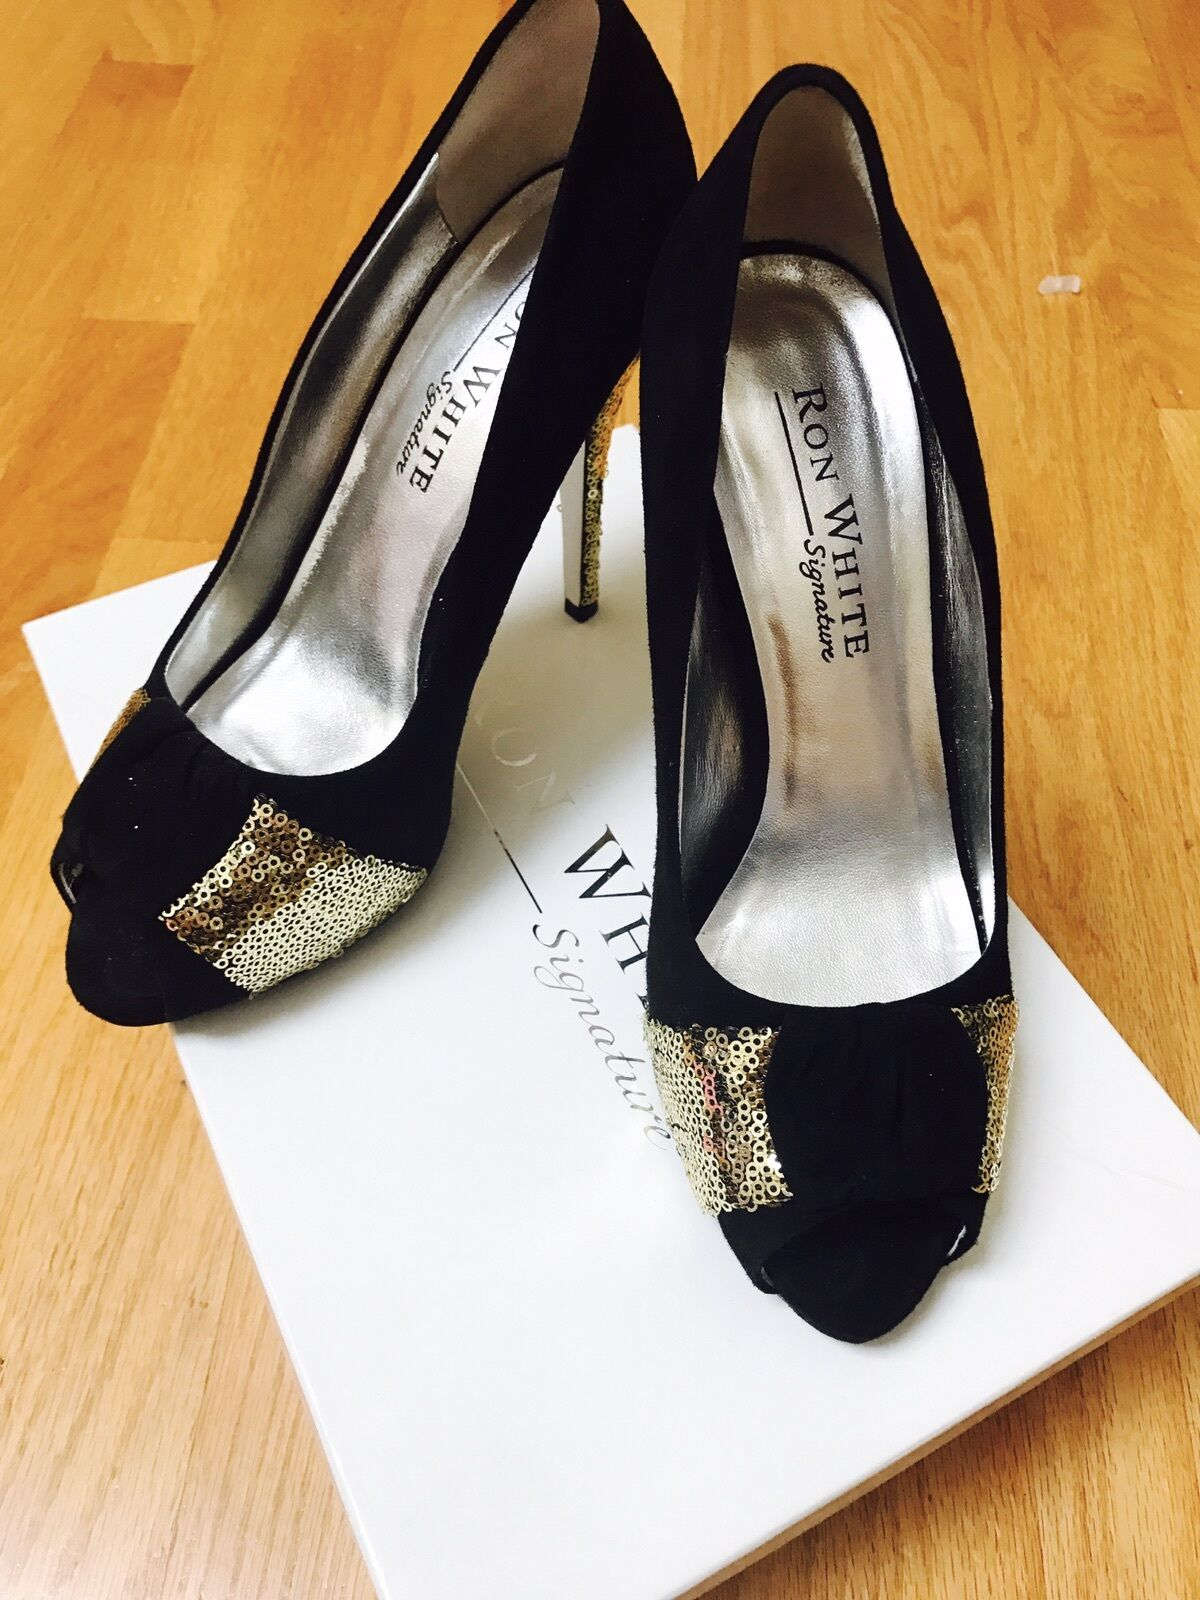 Ron blanc High heel shade Pumps, or accents. Sz 38. .